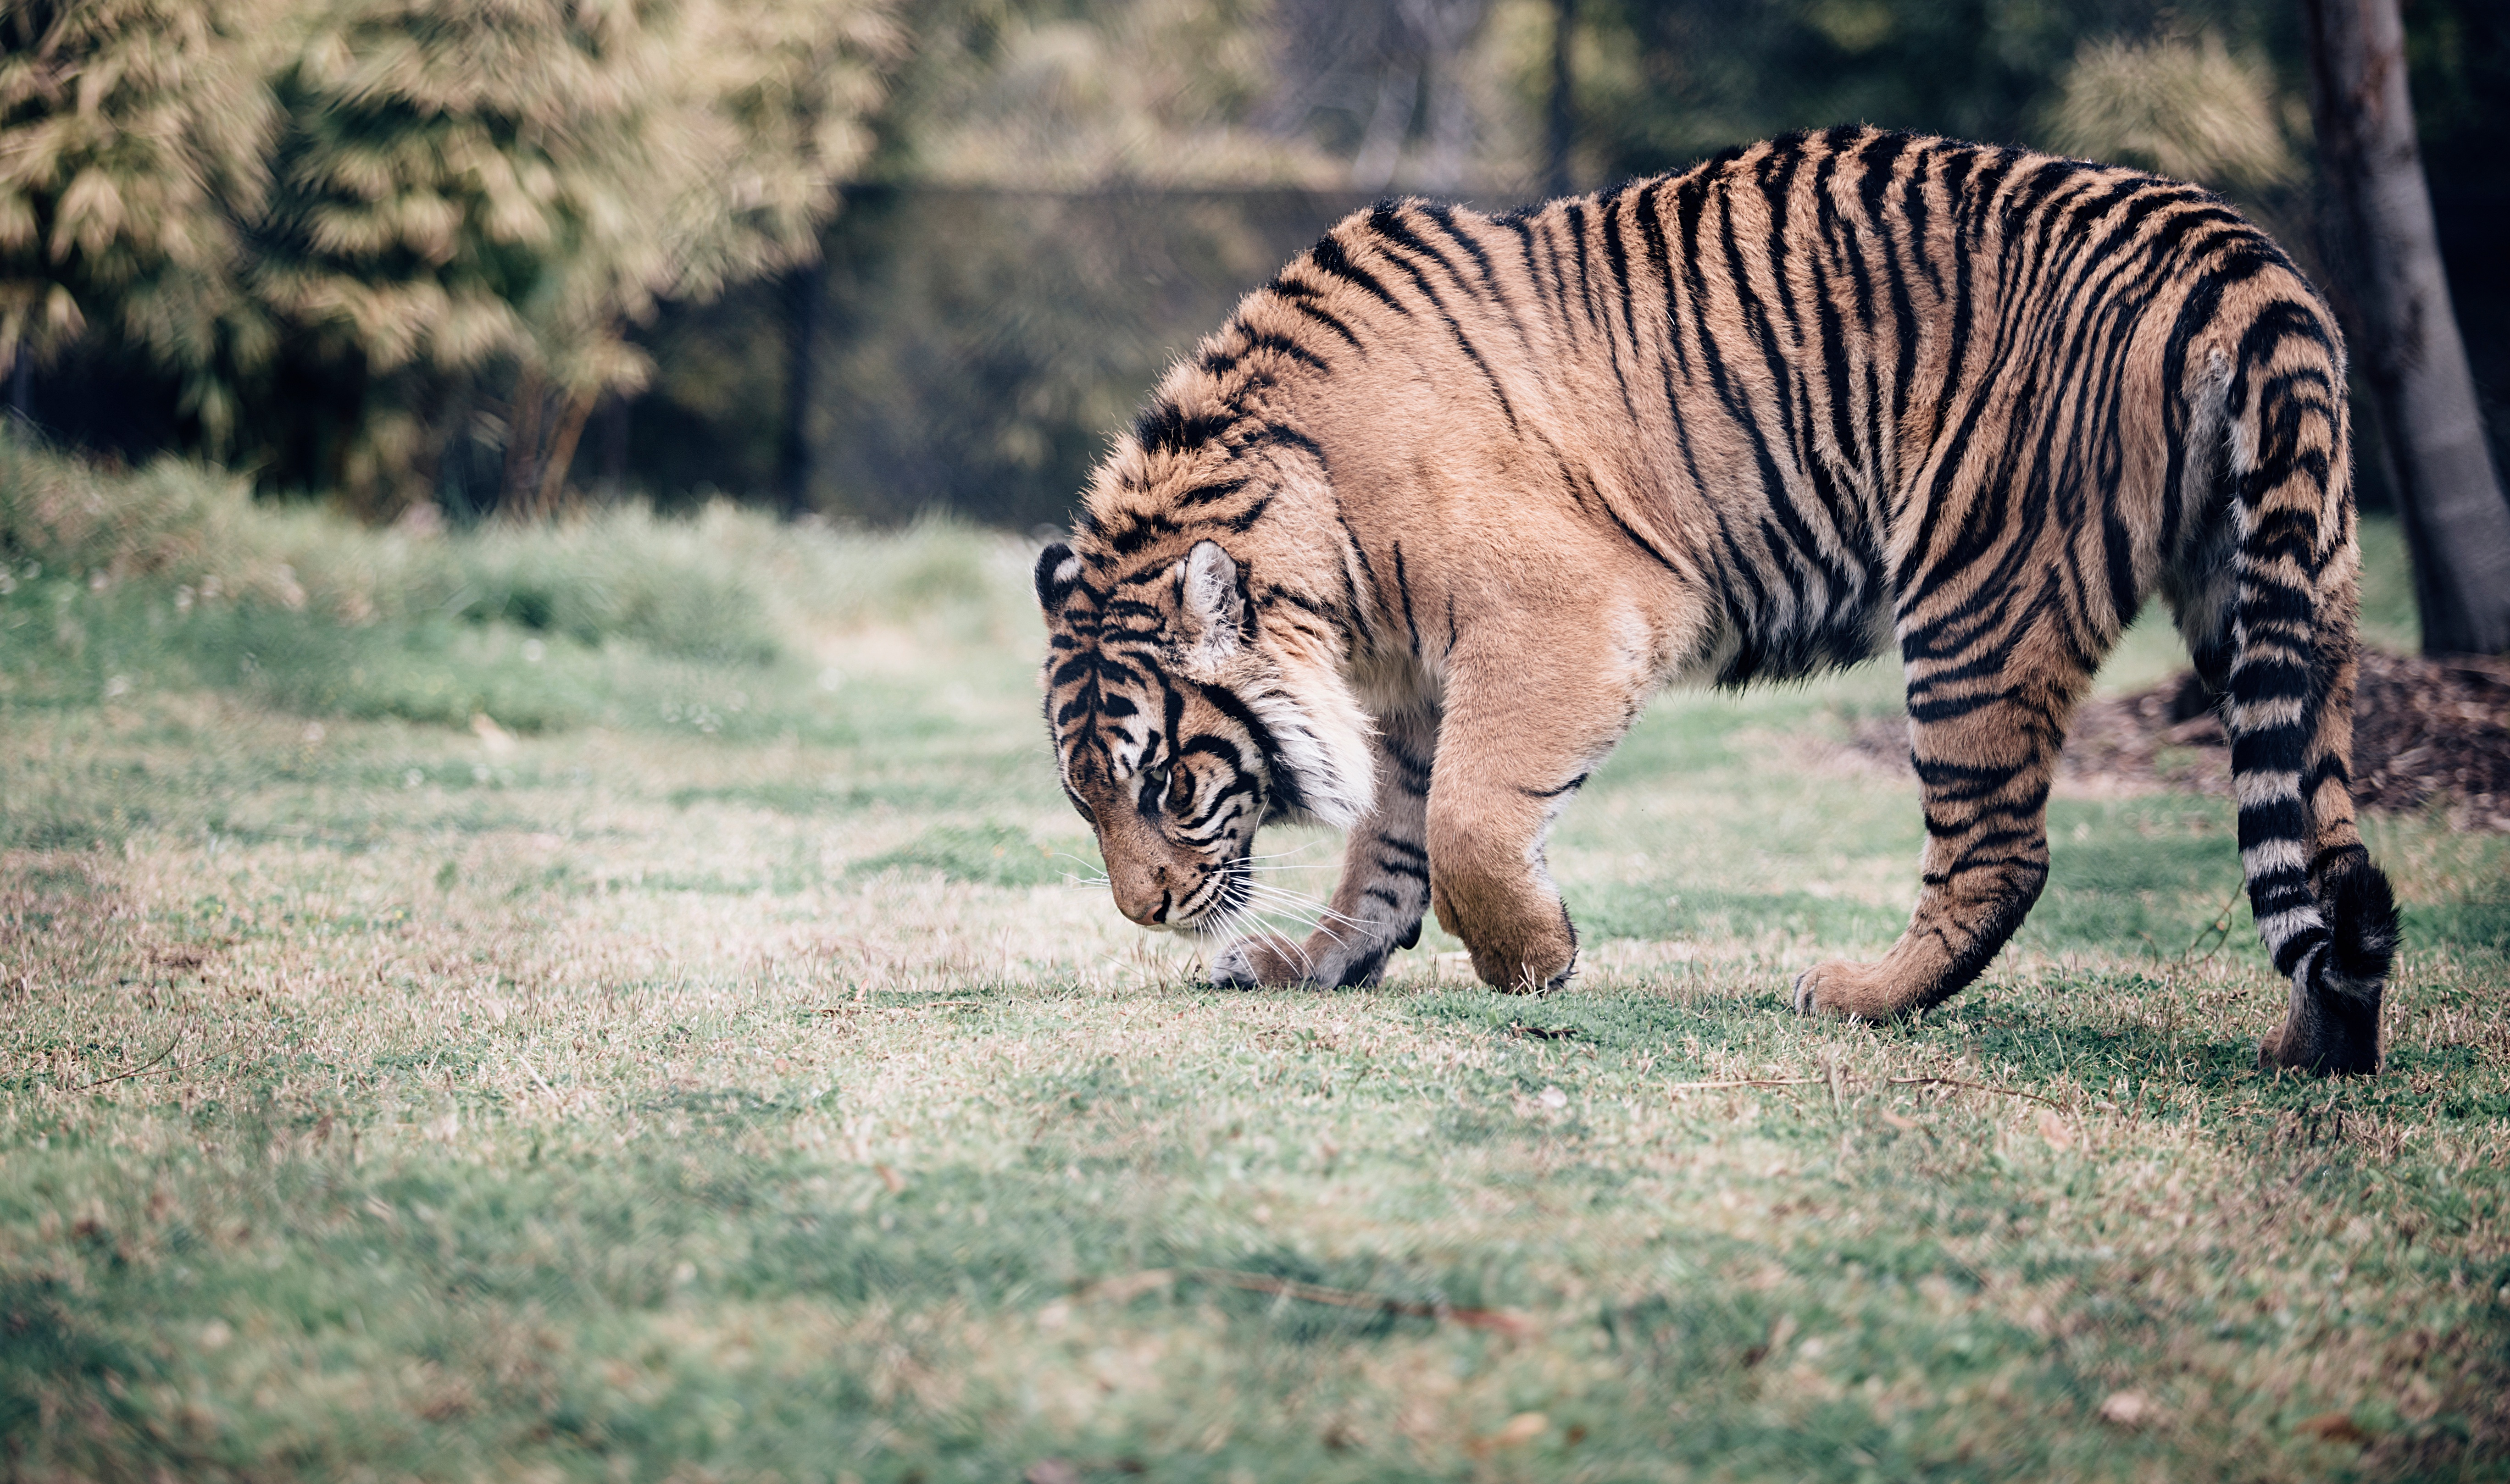 80478 download wallpaper Animals, Tiger, Big Cat, Predator, Stroll screensavers and pictures for free